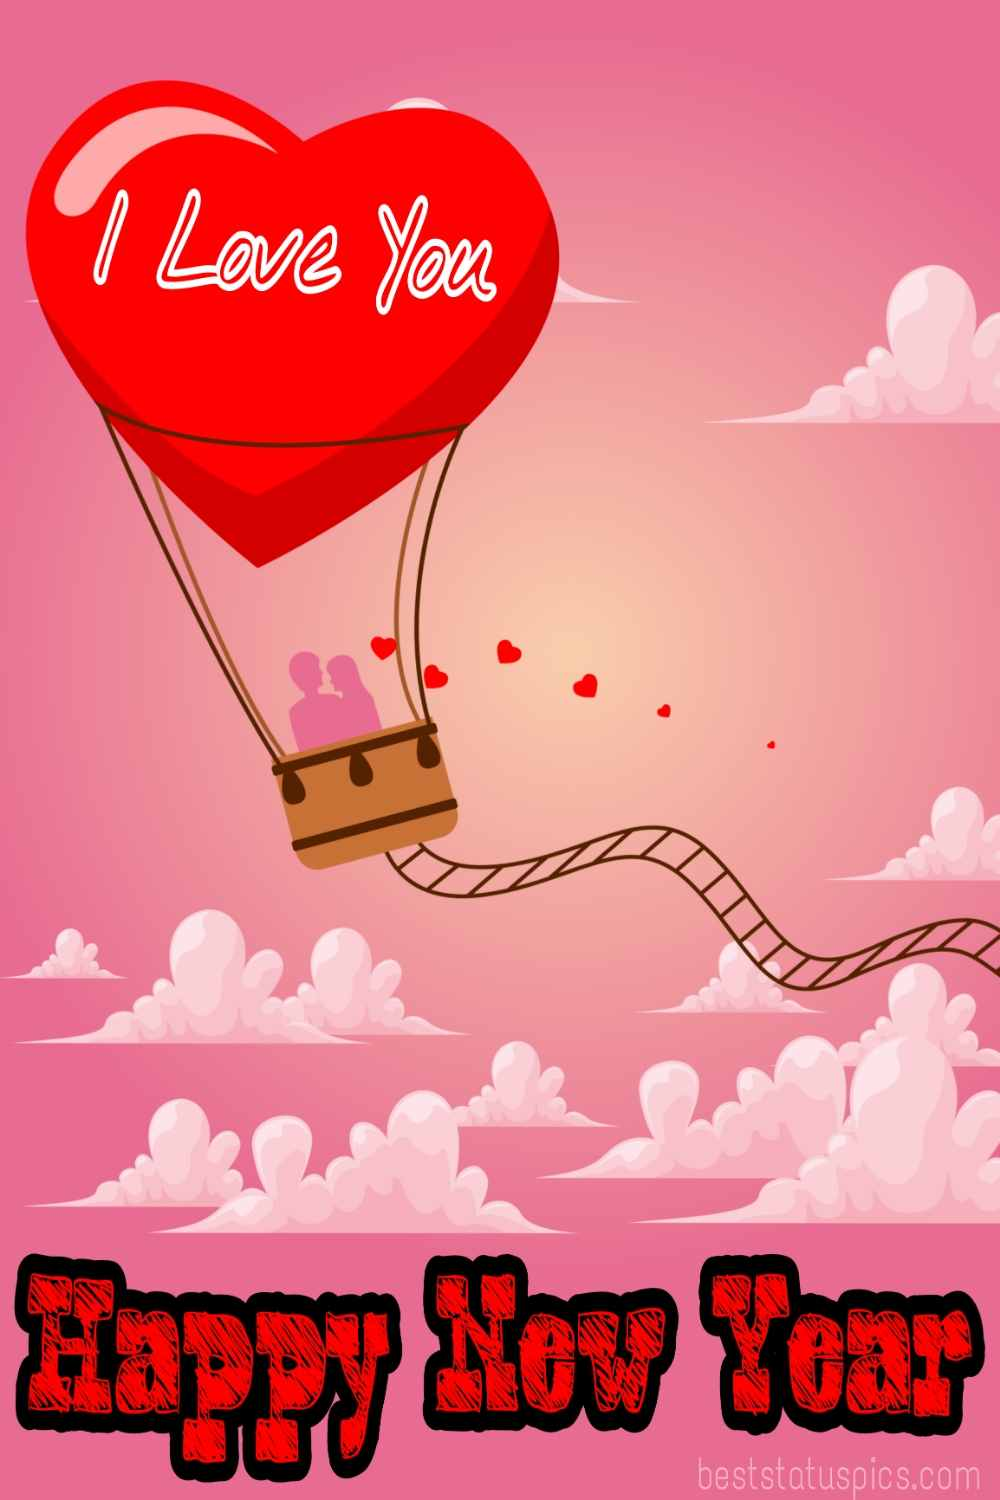 Happy new year 2022 and I love you images with heart balloon and couples for boyfriend and girlfriend